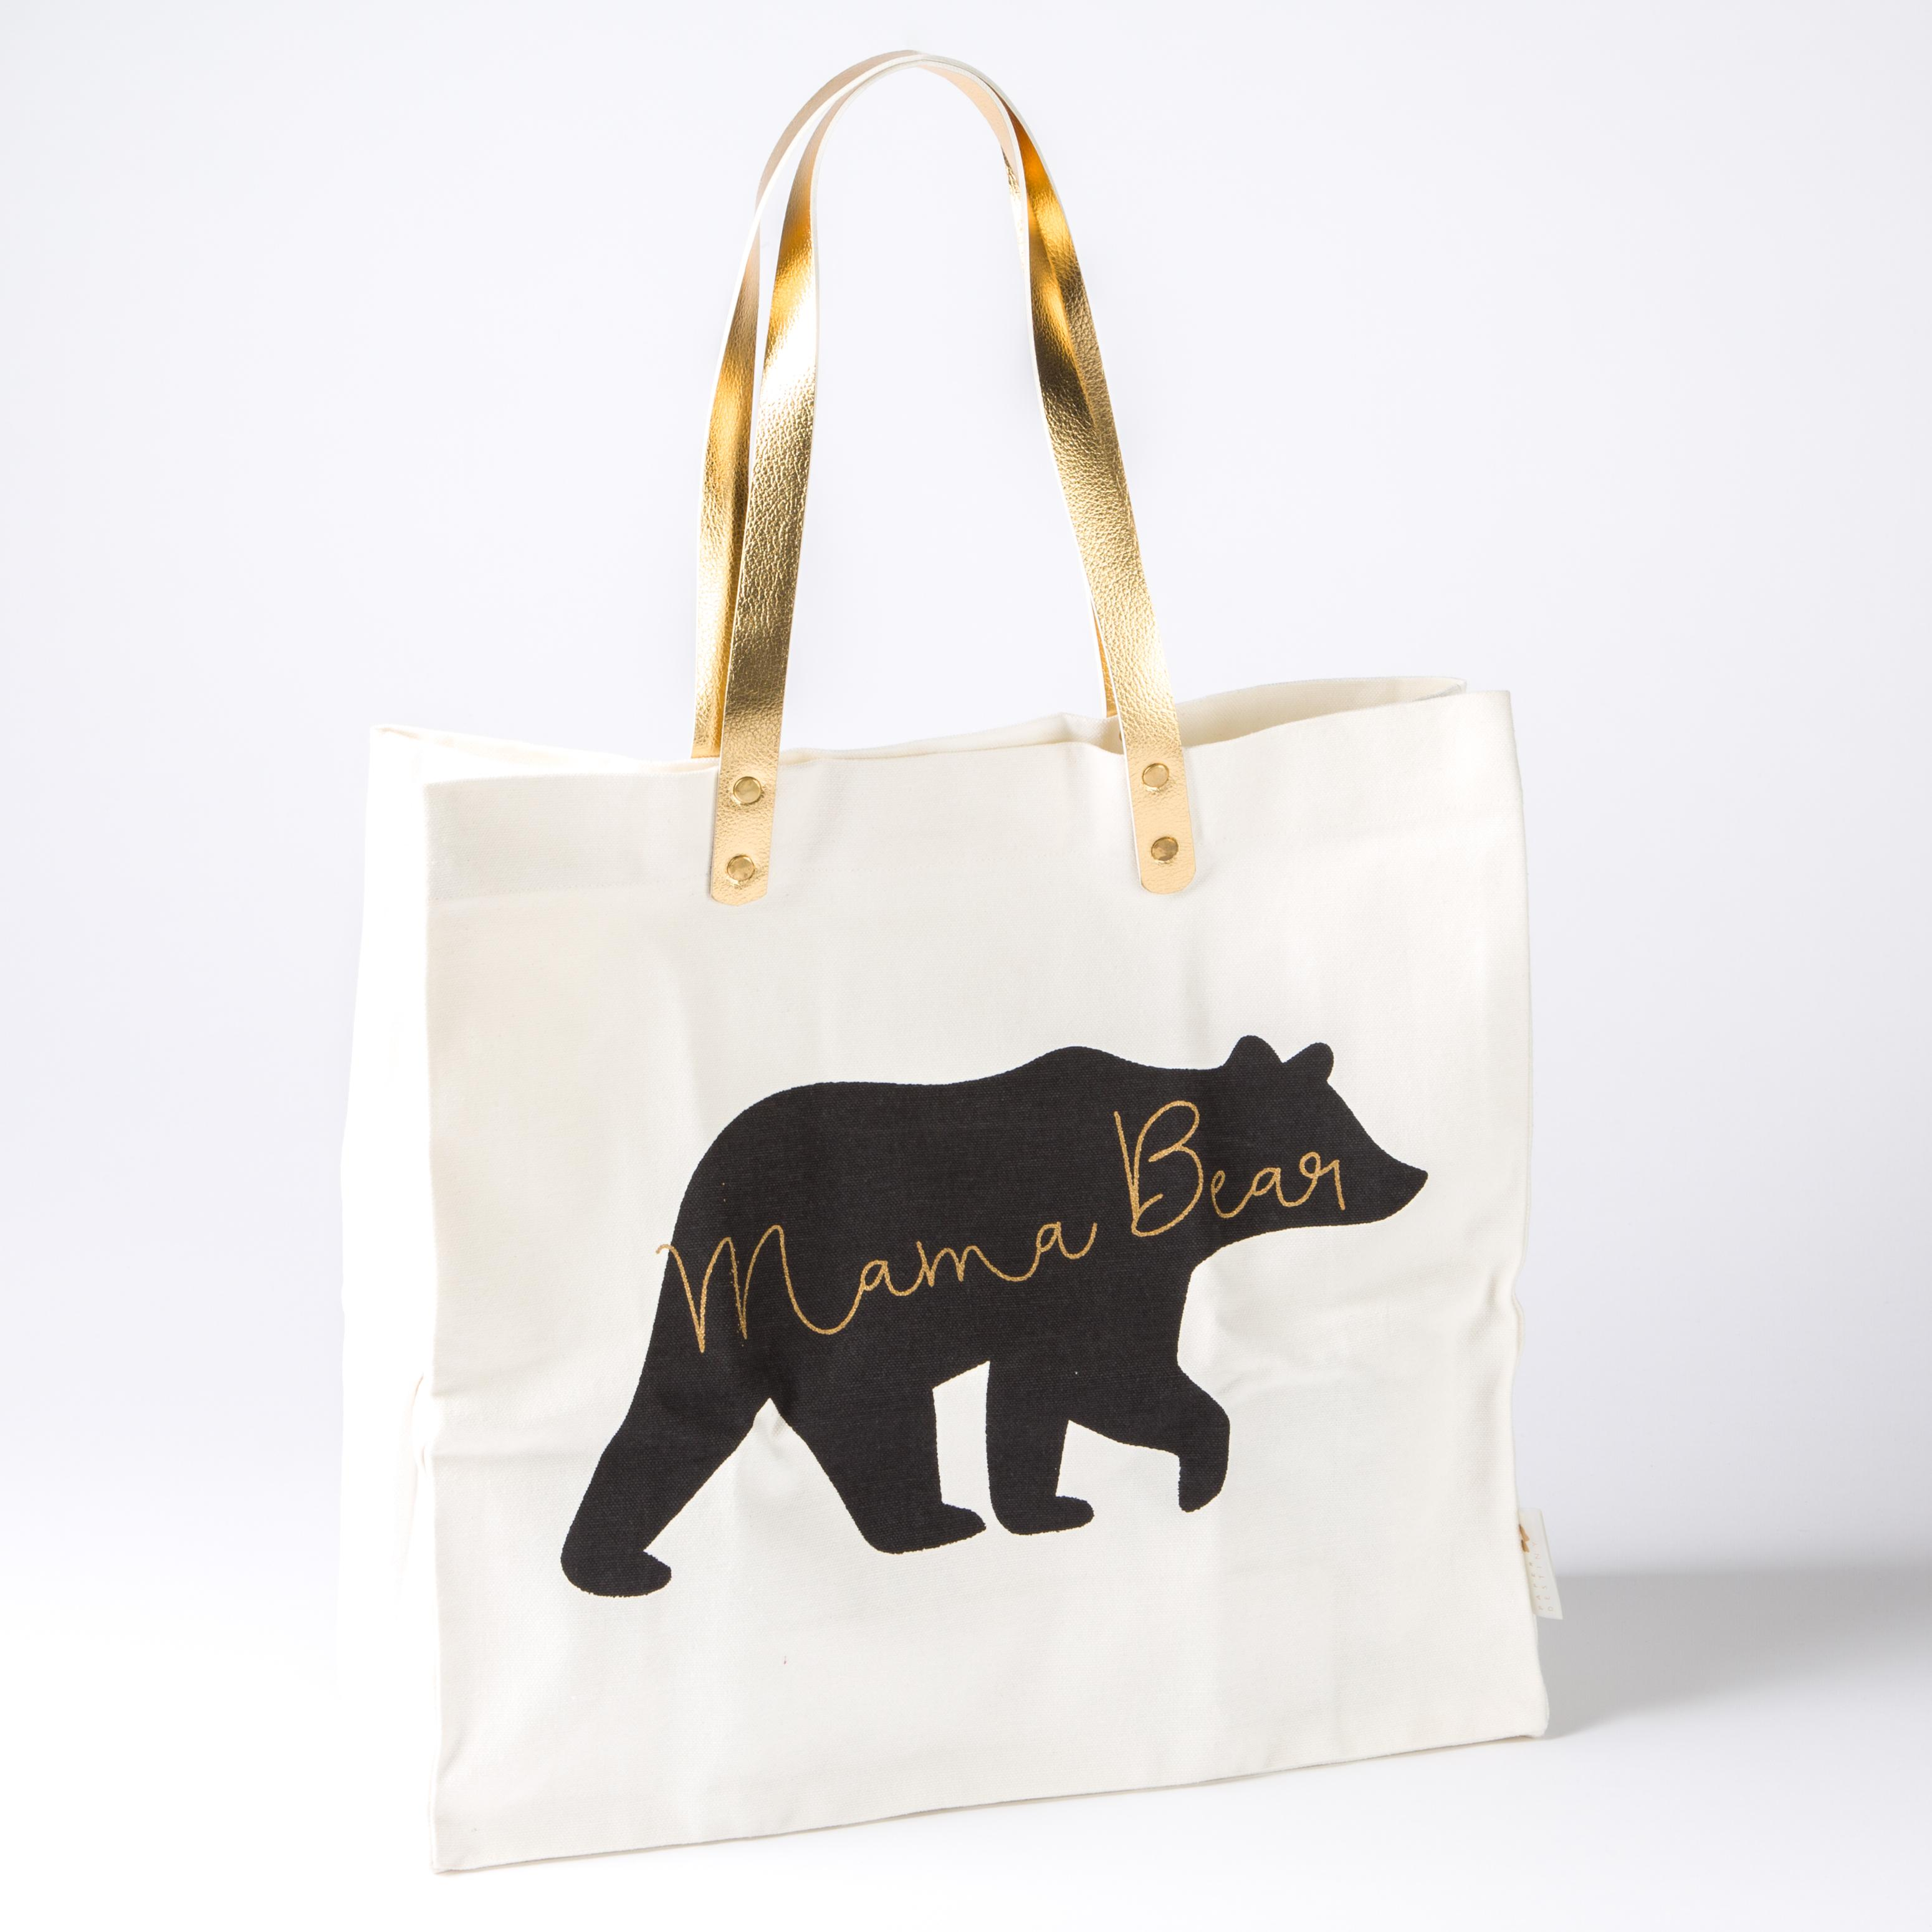 PAPYRUS Mama Bear Tote // Price: $15.95 // Purchase at PAPYRUS stores // (Photo: PAPYRUS)